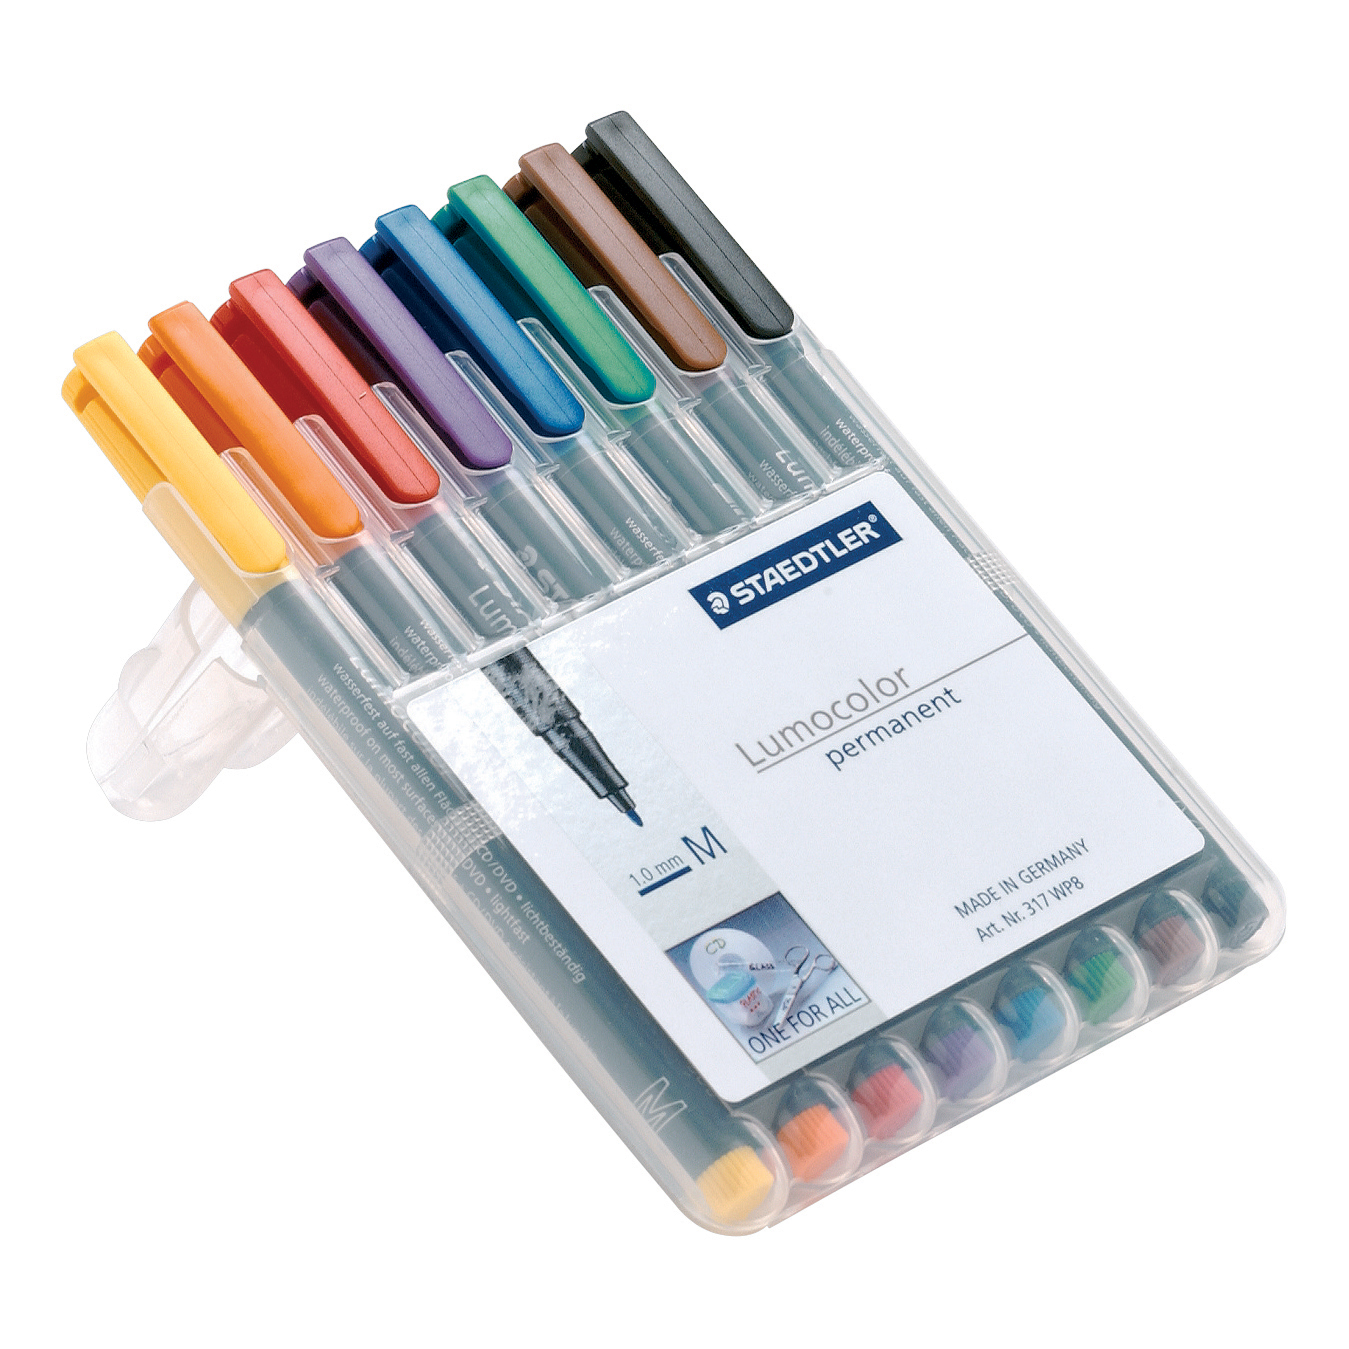 Staedtler 318 Lumocolor Pen Permanent Fine 0.6mm Assorted Ref 318WP8 Wallet 8